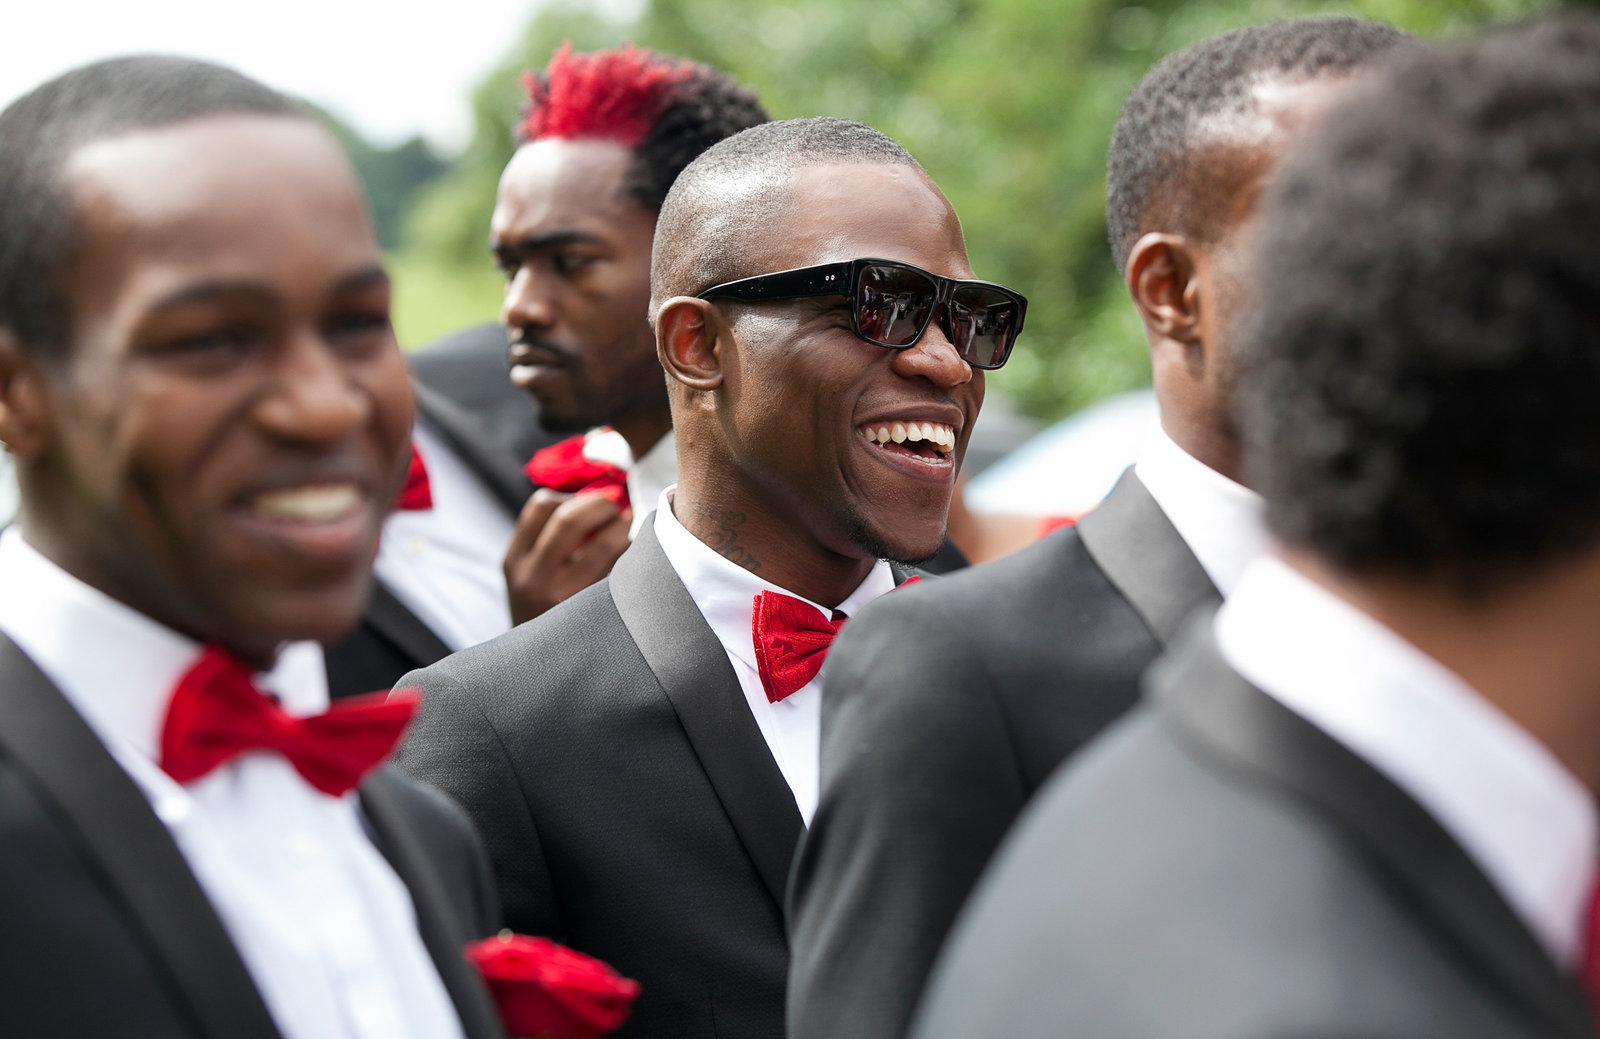 Candid natural photo of these stylish groomsmen in black suit with red bow tie at this nigerian wedding in London